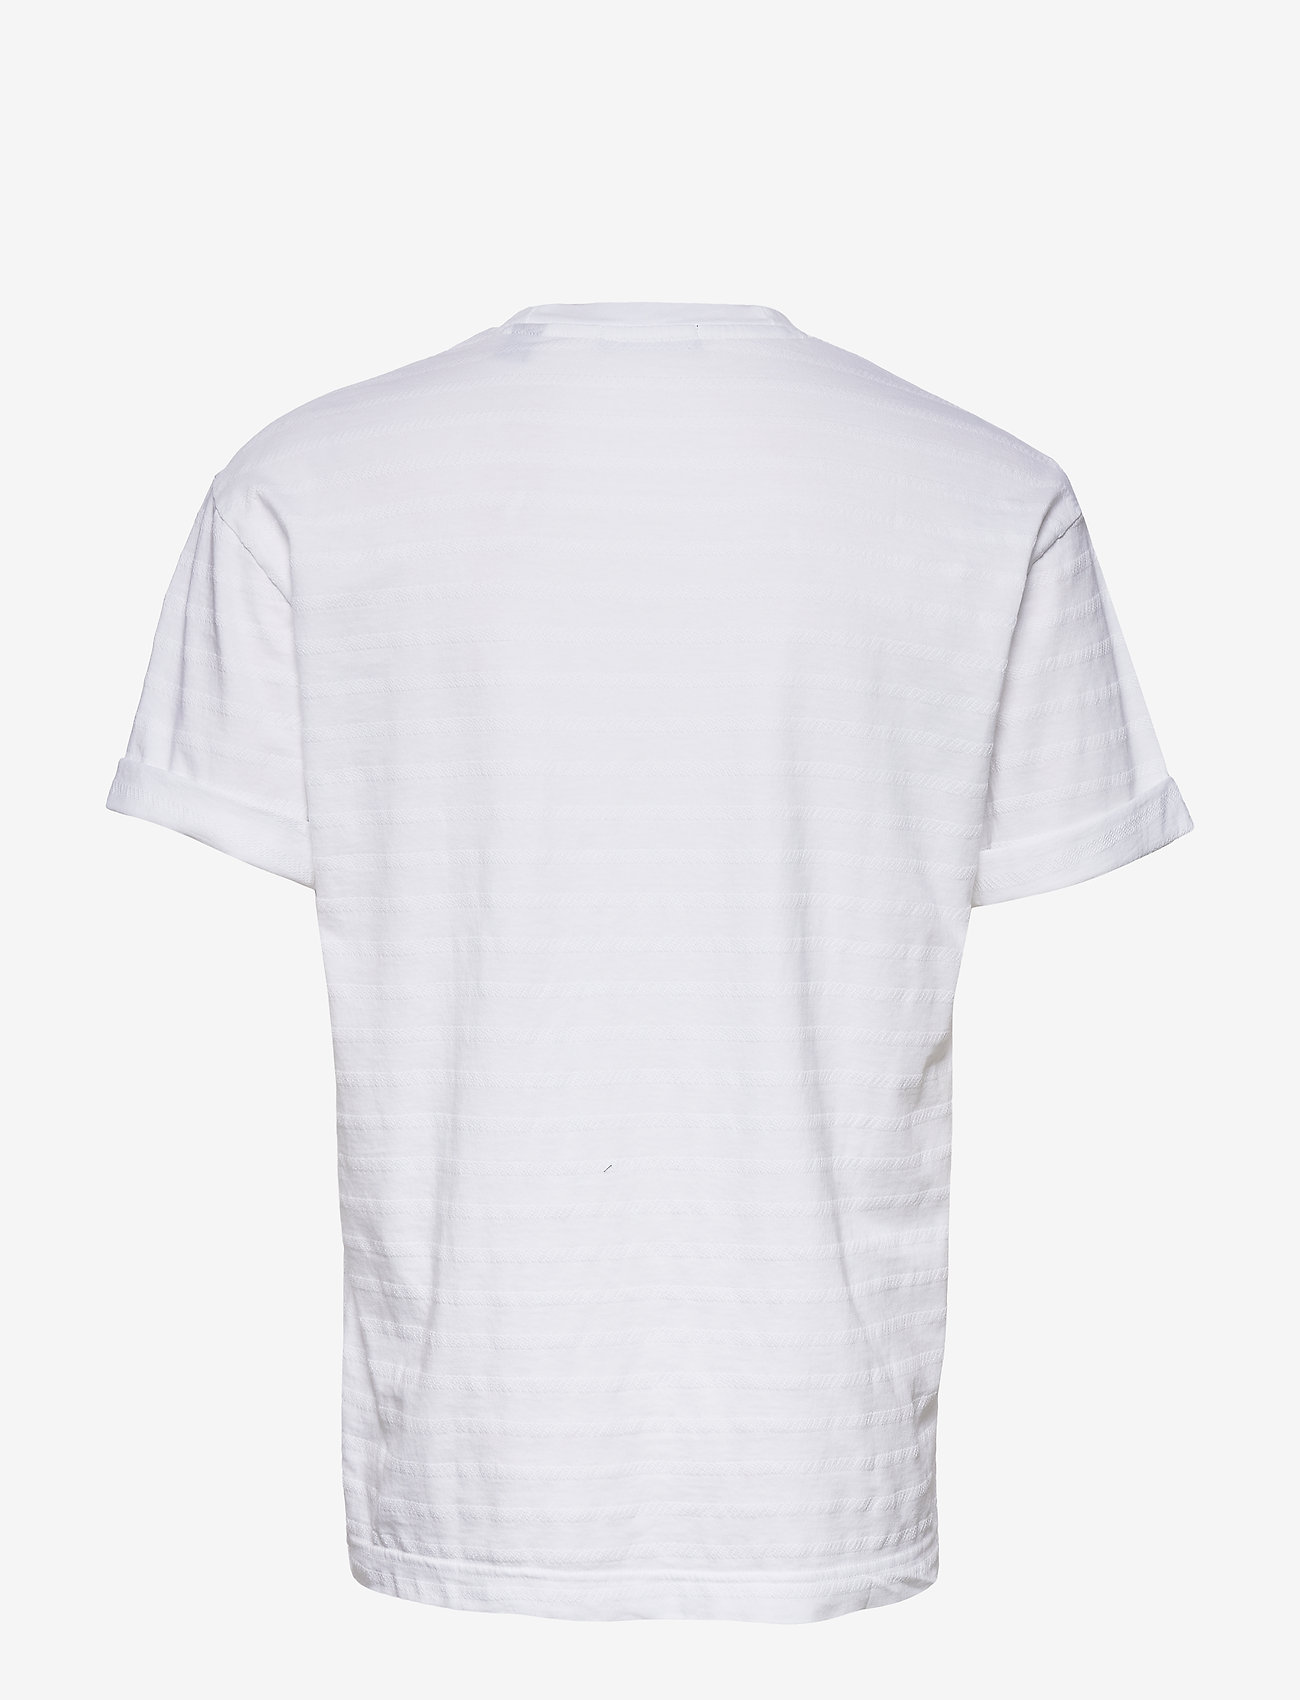 Scotch & Soda - Relaxed crewneck tee in structured stripe pattern - t-shirts basiques - off white - 1